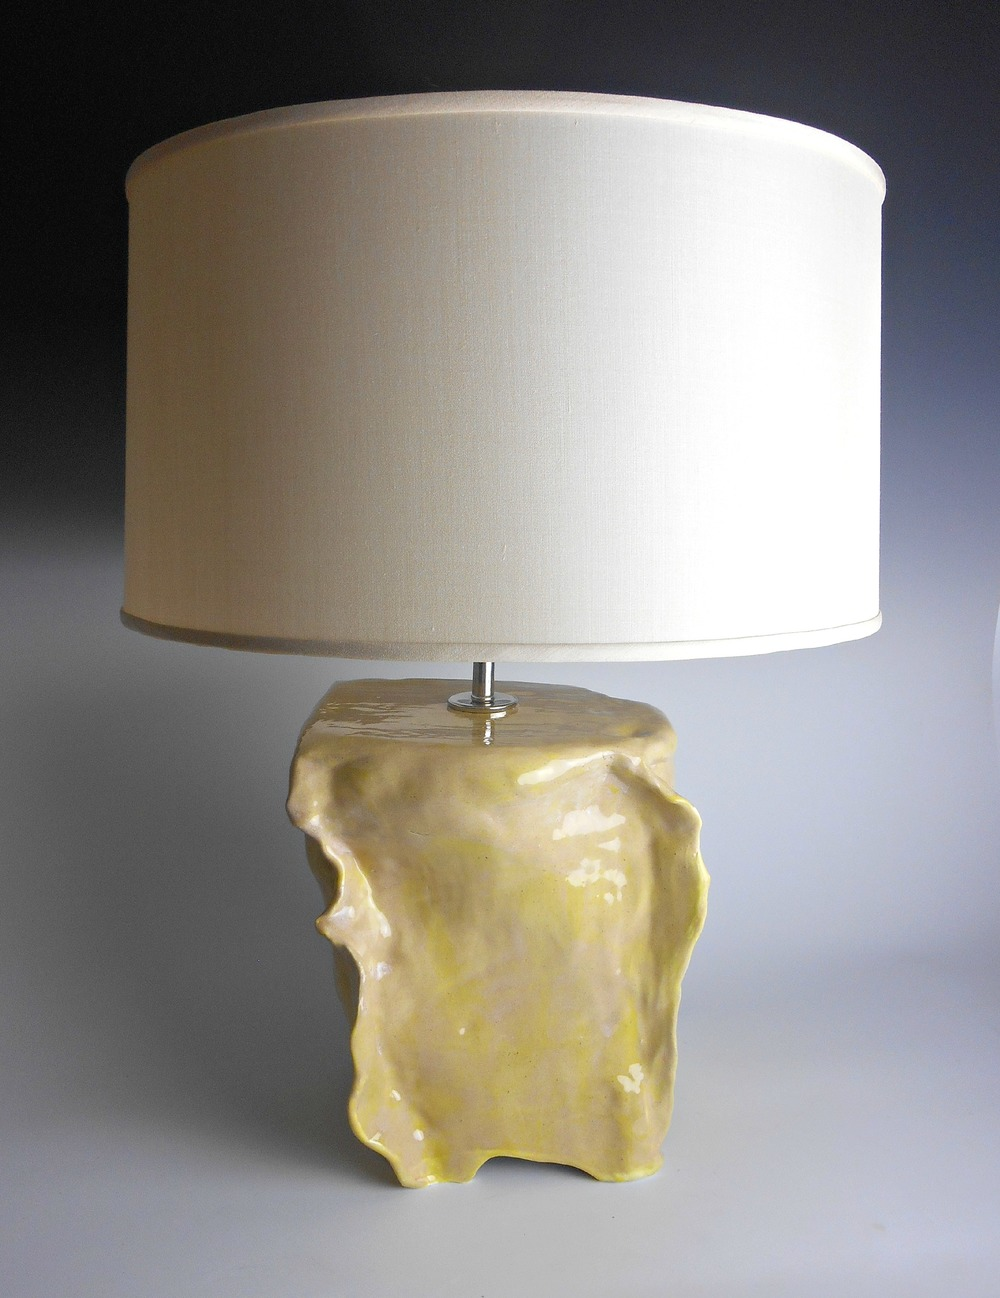 Modern Ceramic Table Lamp from the Miami Collection by Maggie Minor Designs